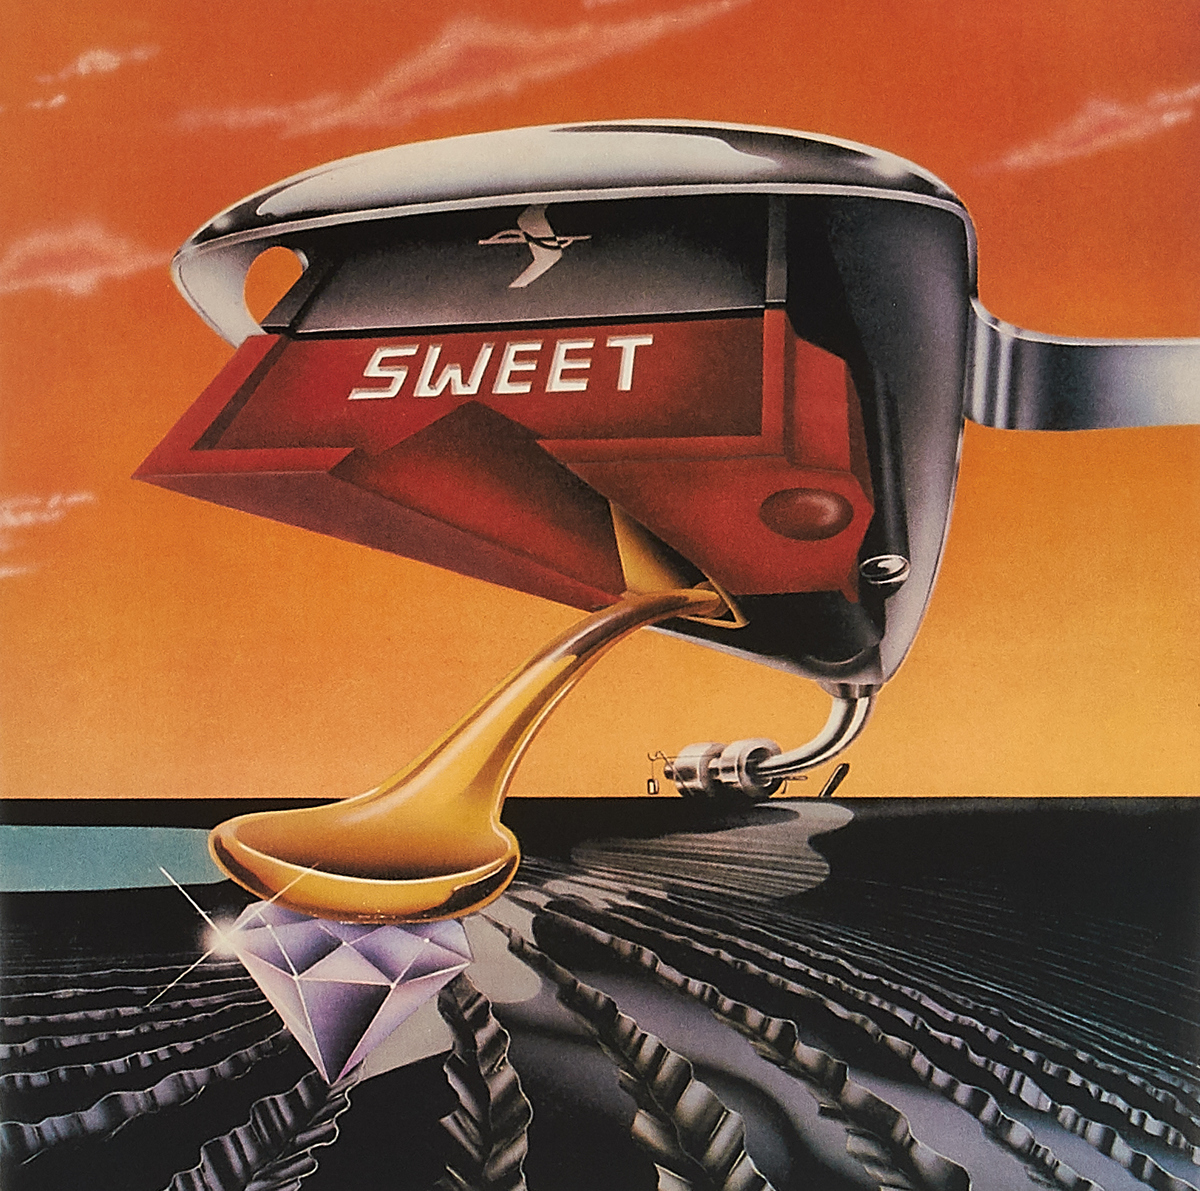 Sweet Sweet. Off The Record (New Vinyl Edition) (LP) the sweet münchen